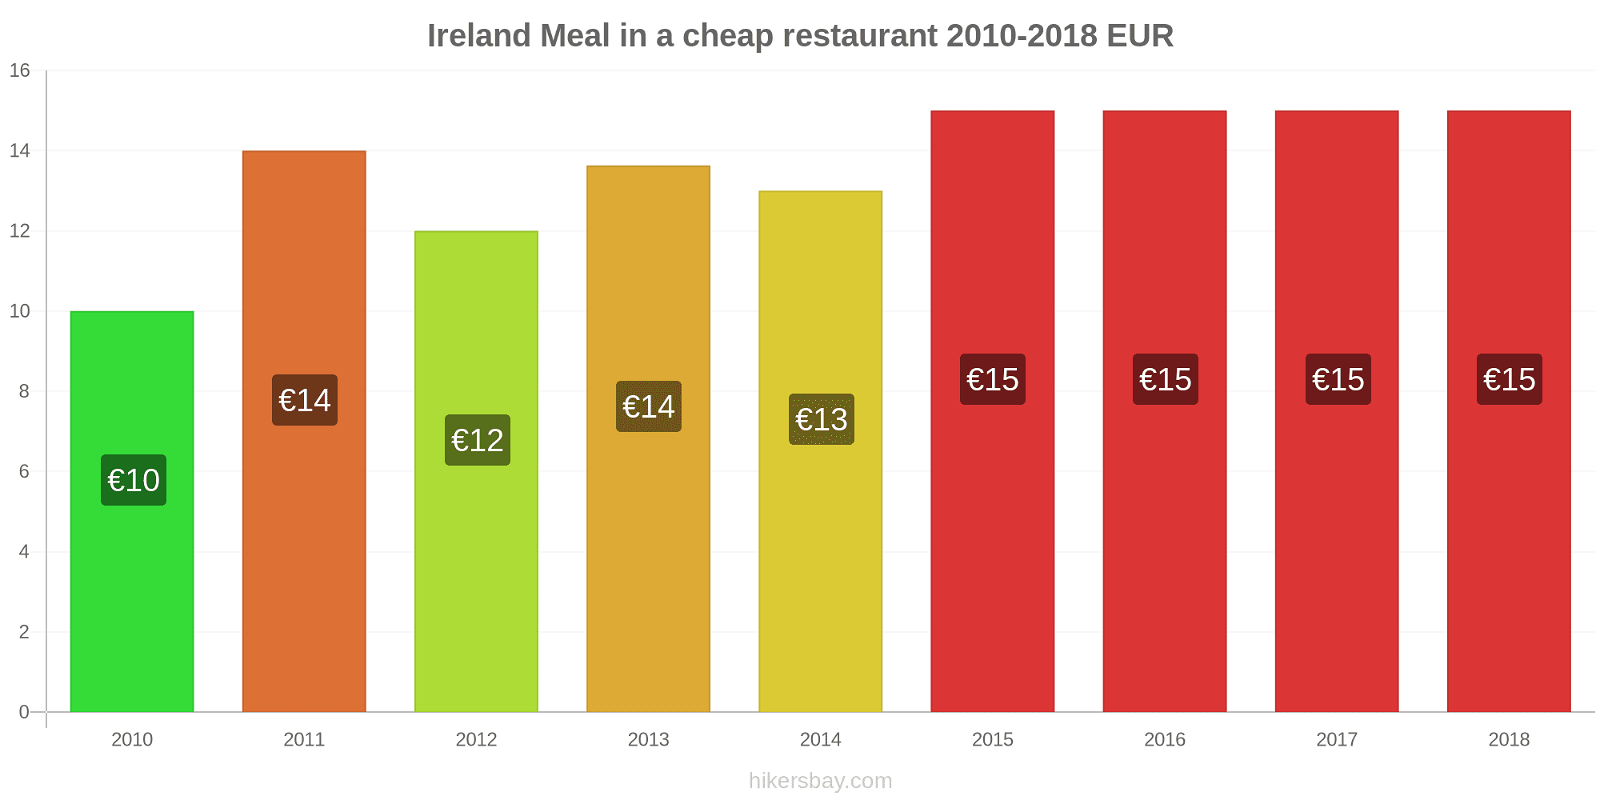 Ireland price changes Meal in a cheap restaurant hikersbay.com